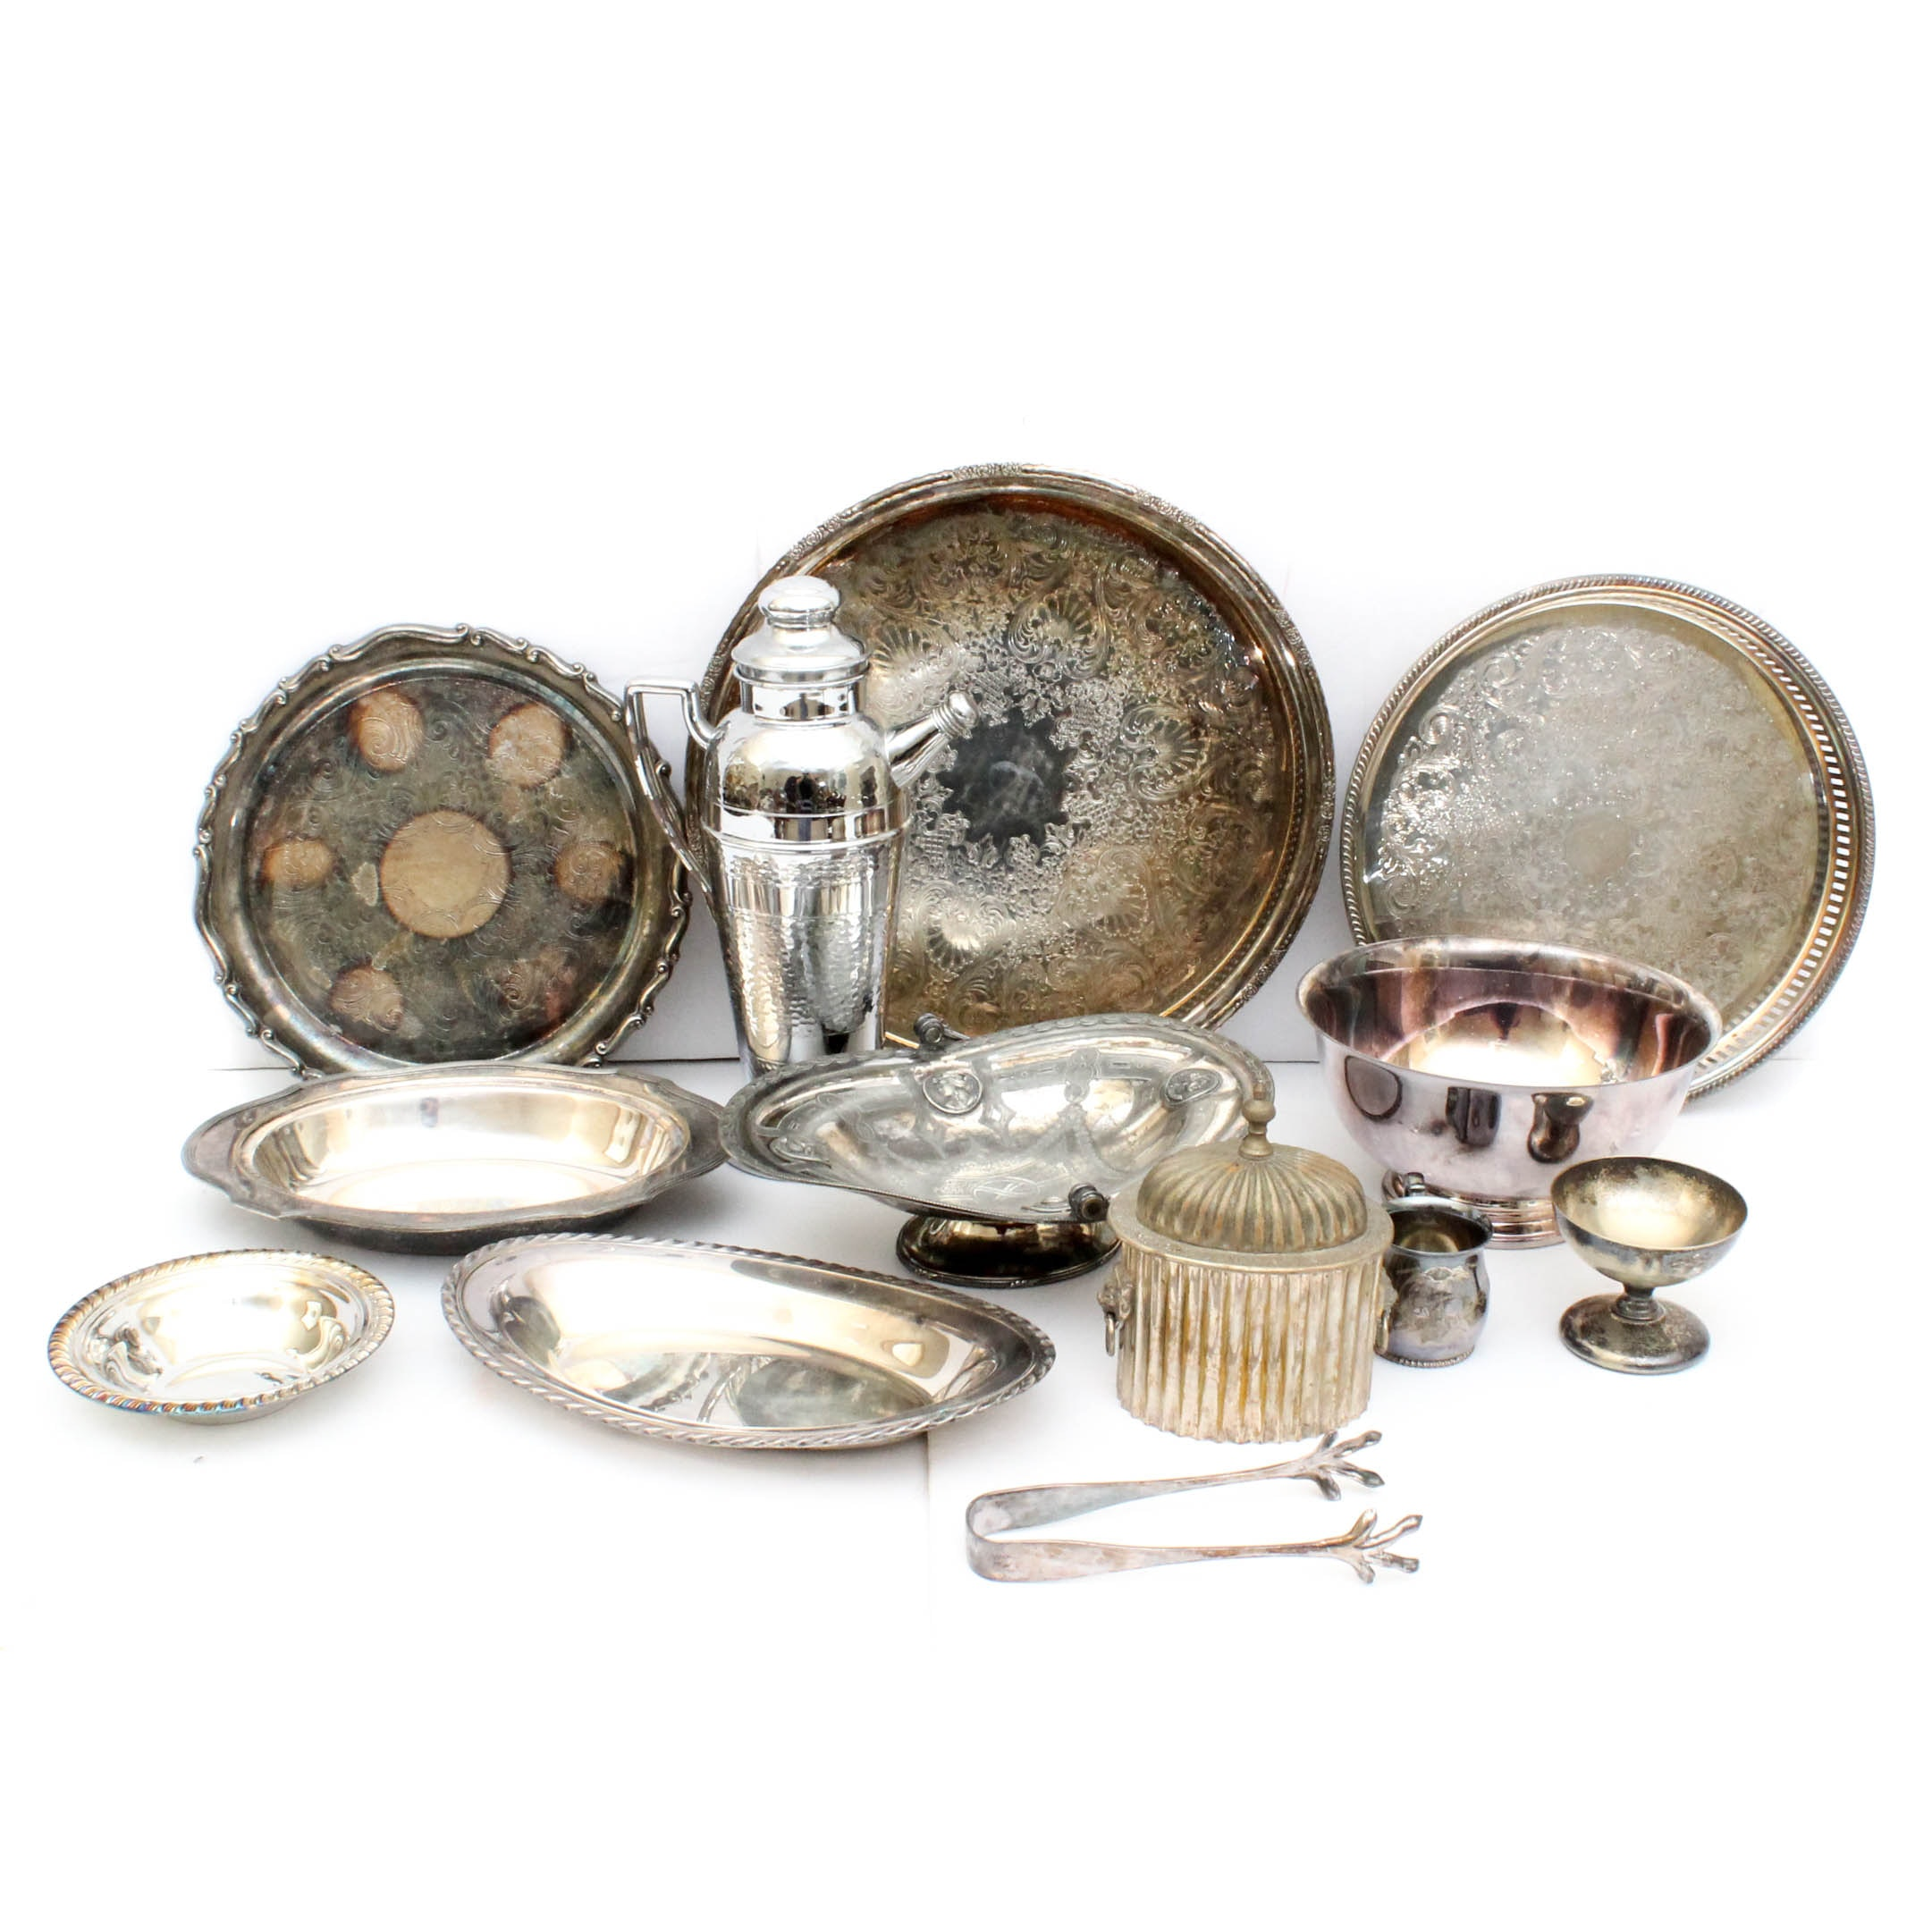 Silver Plated Tableware Featuring Paul Revere Reproduction Bowl